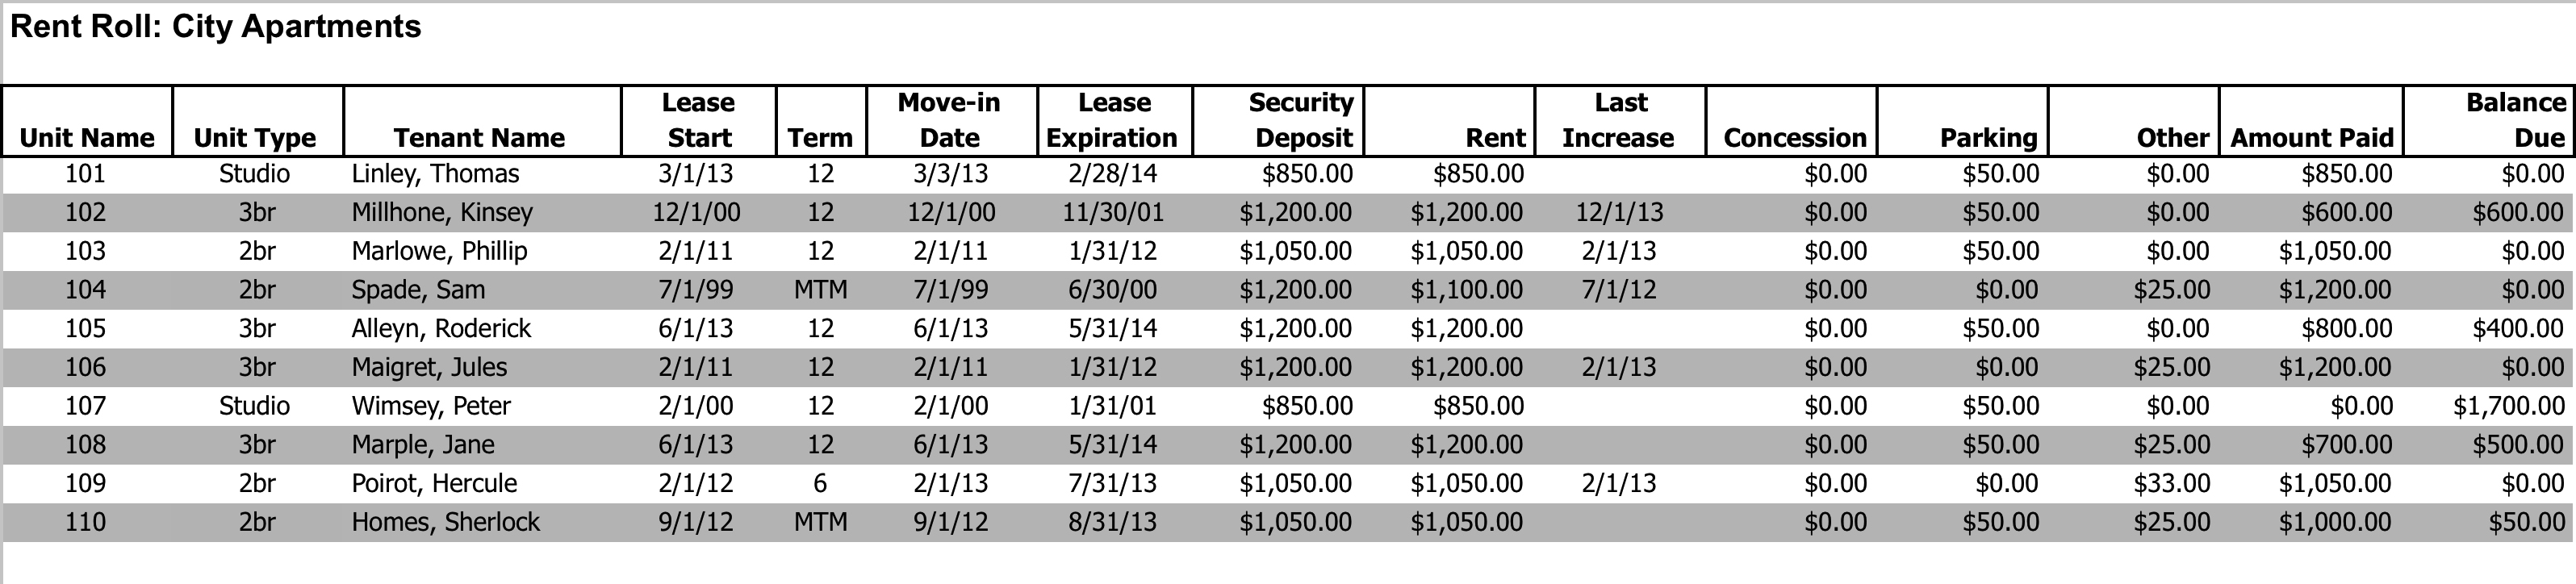 download free rent roll spreadsheet